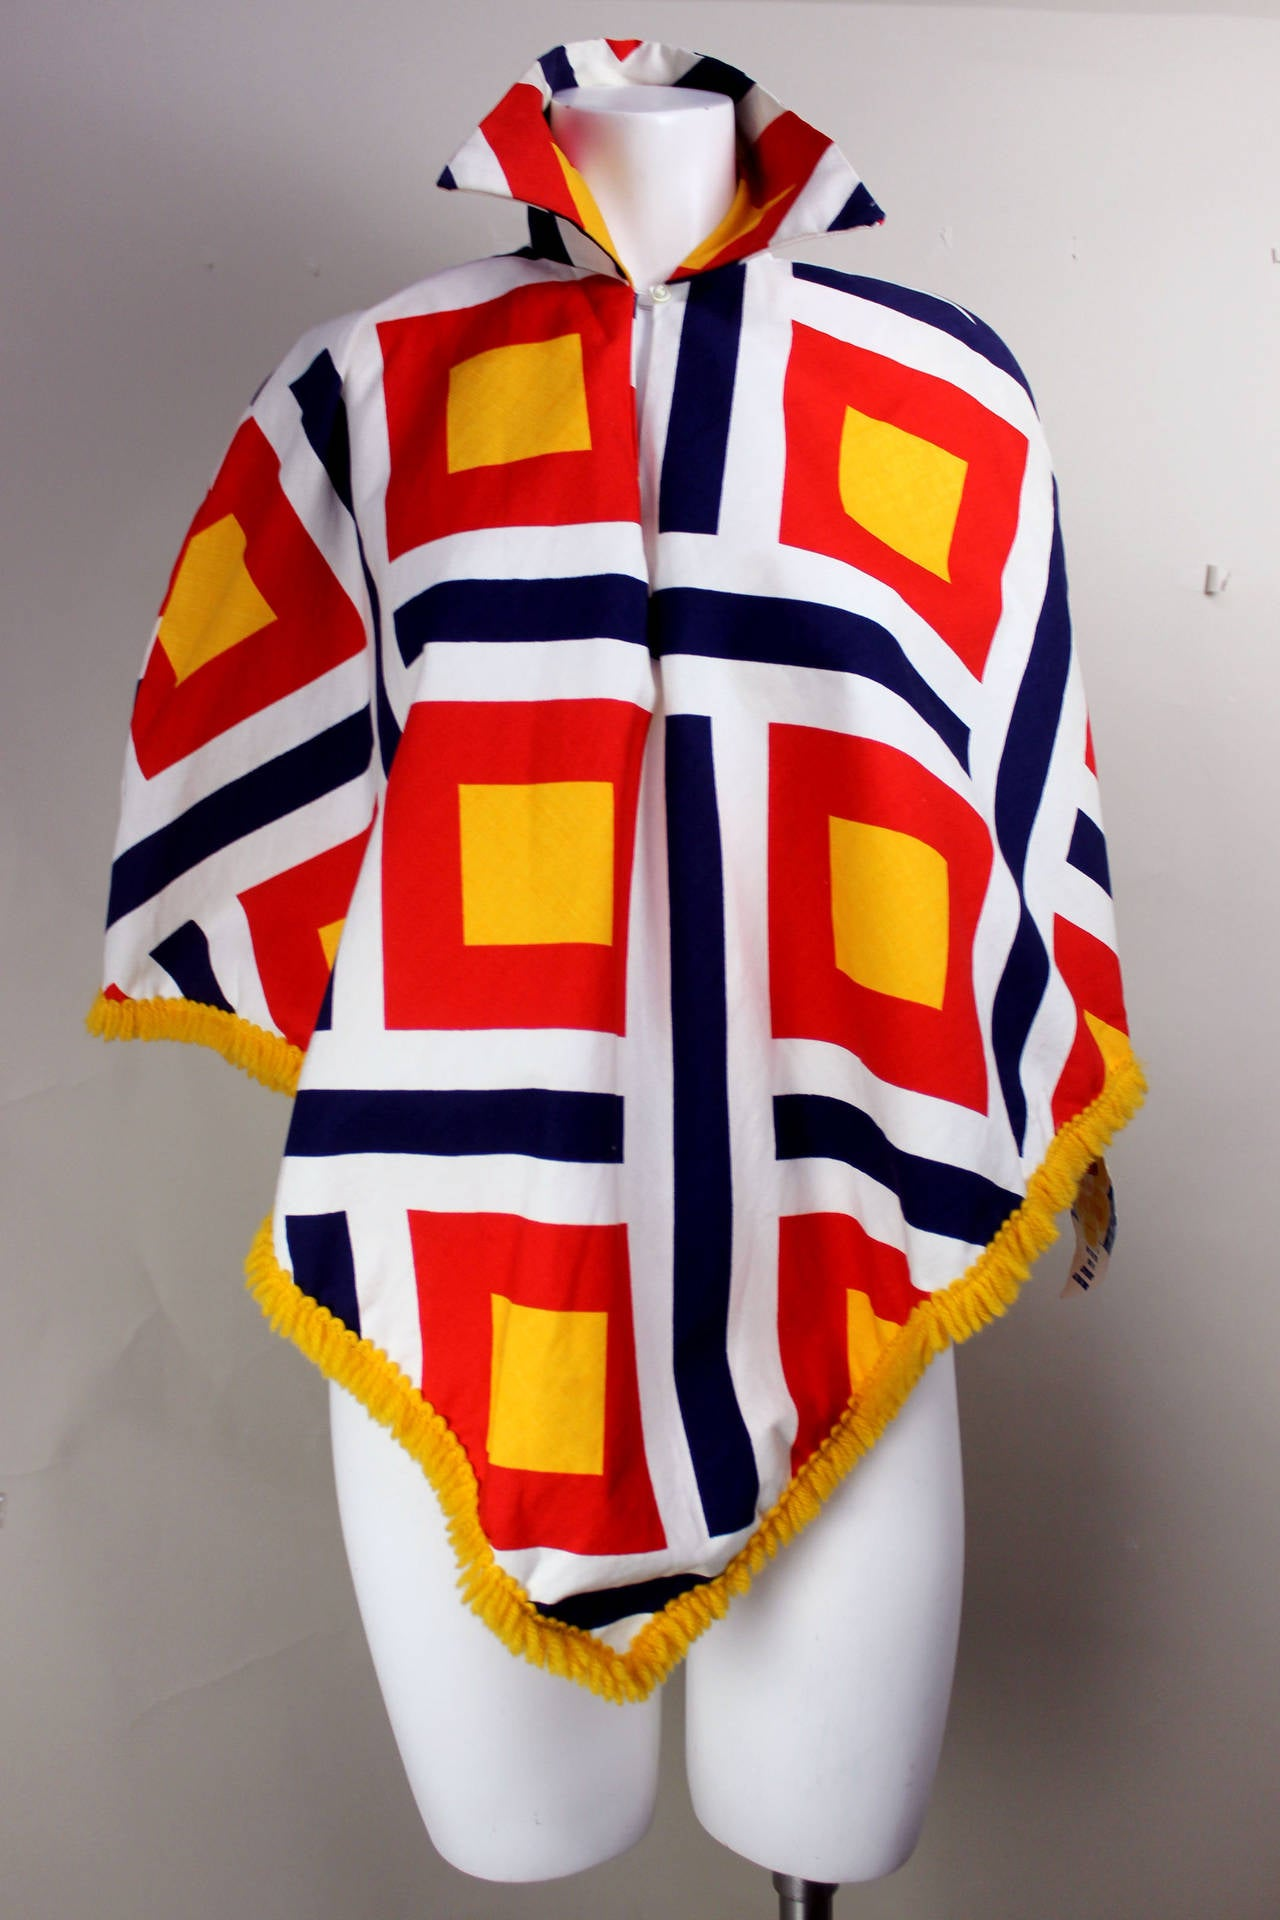 This never worn late 60's early 70's beach poncho is an exceptional find. The bold geometric print is in marigold, red, and navy, with the addition of a marigold fringed yarn trim. This is an iconic piece of vintage beach wear with all of the